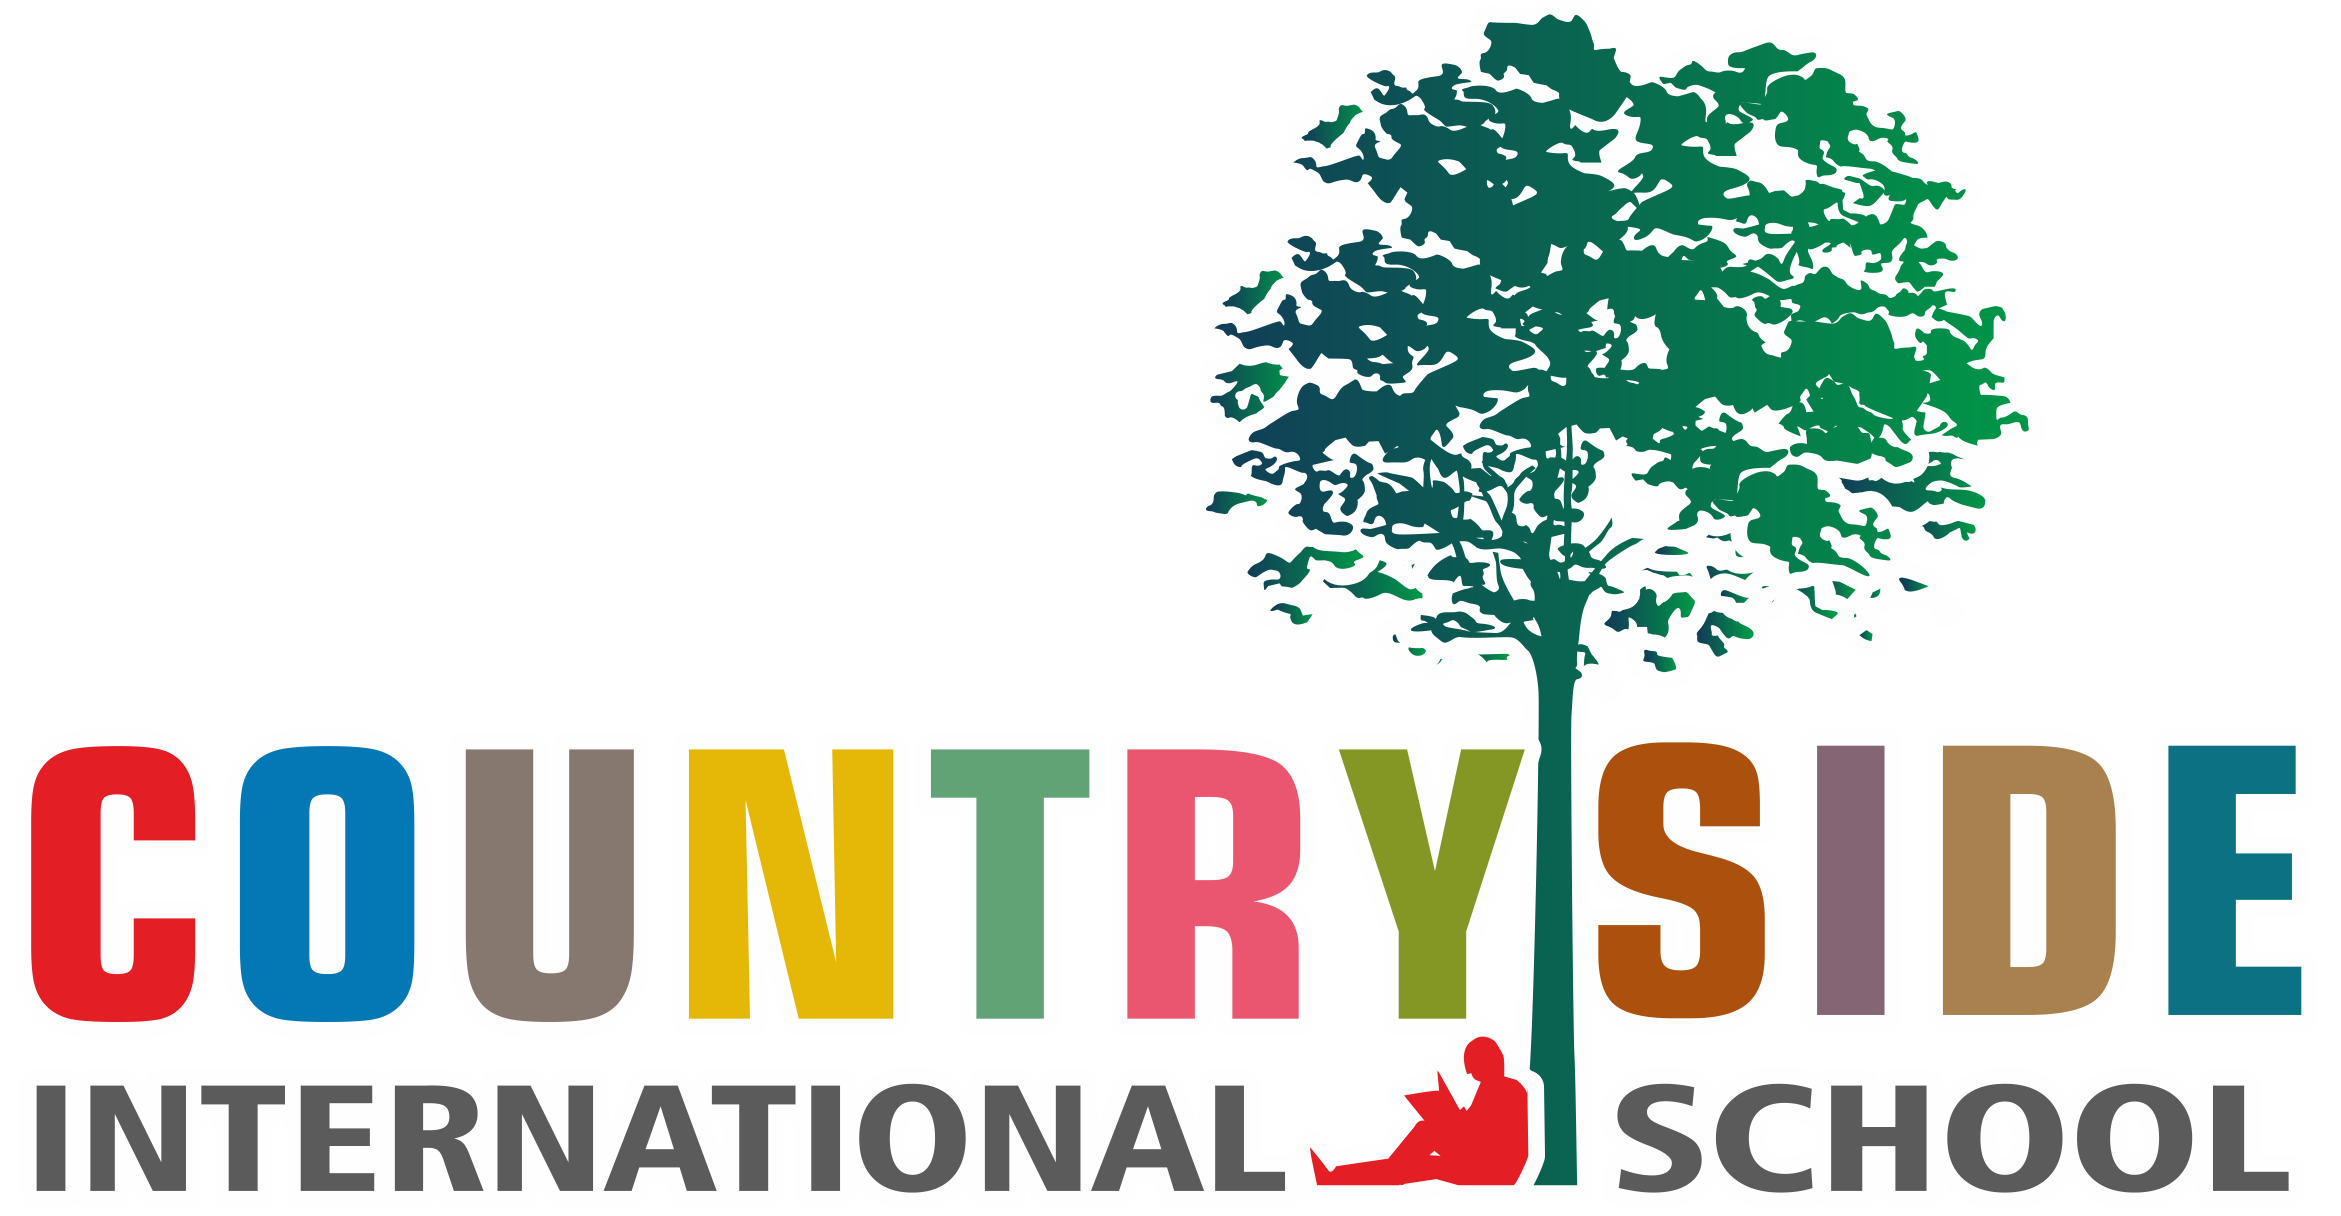 Countryside International School Surat